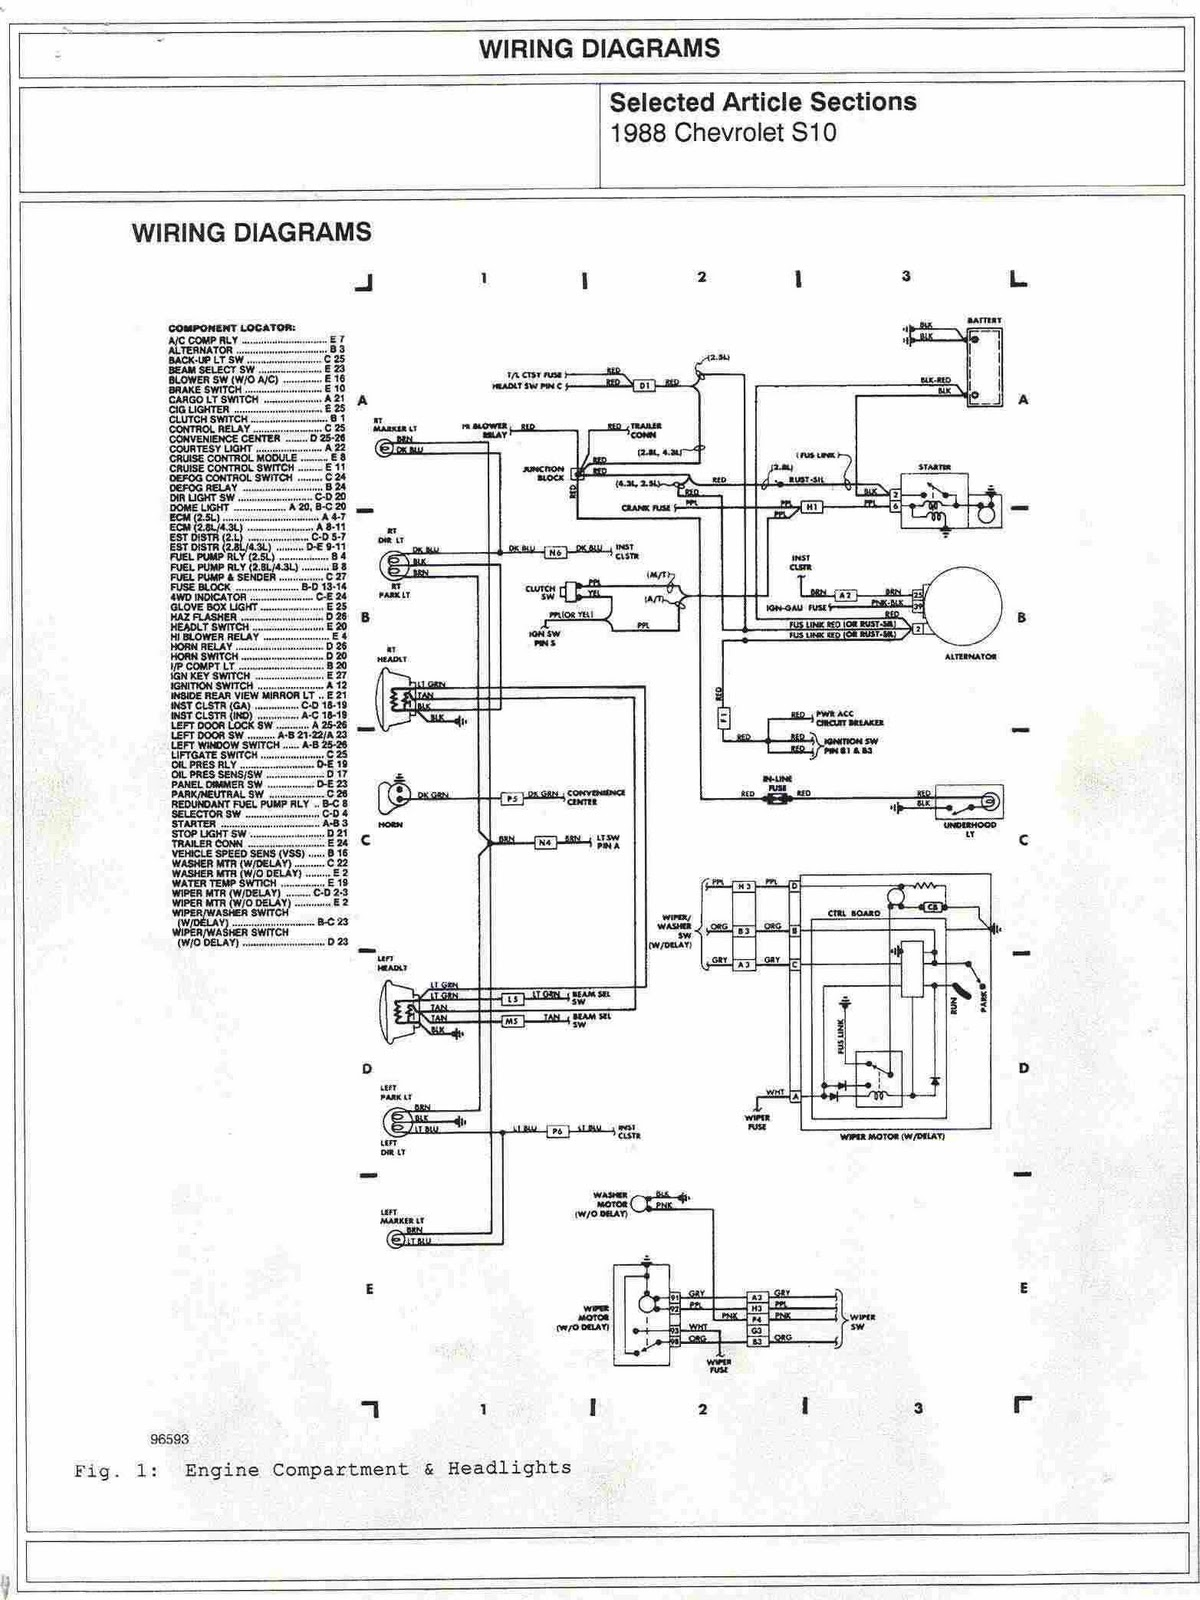 Swirl Monitor Wiring Diagram 2003 Ford Ranger Data Diagrams 1993 Radio 87 Chrysler Lebaron Porsche 944